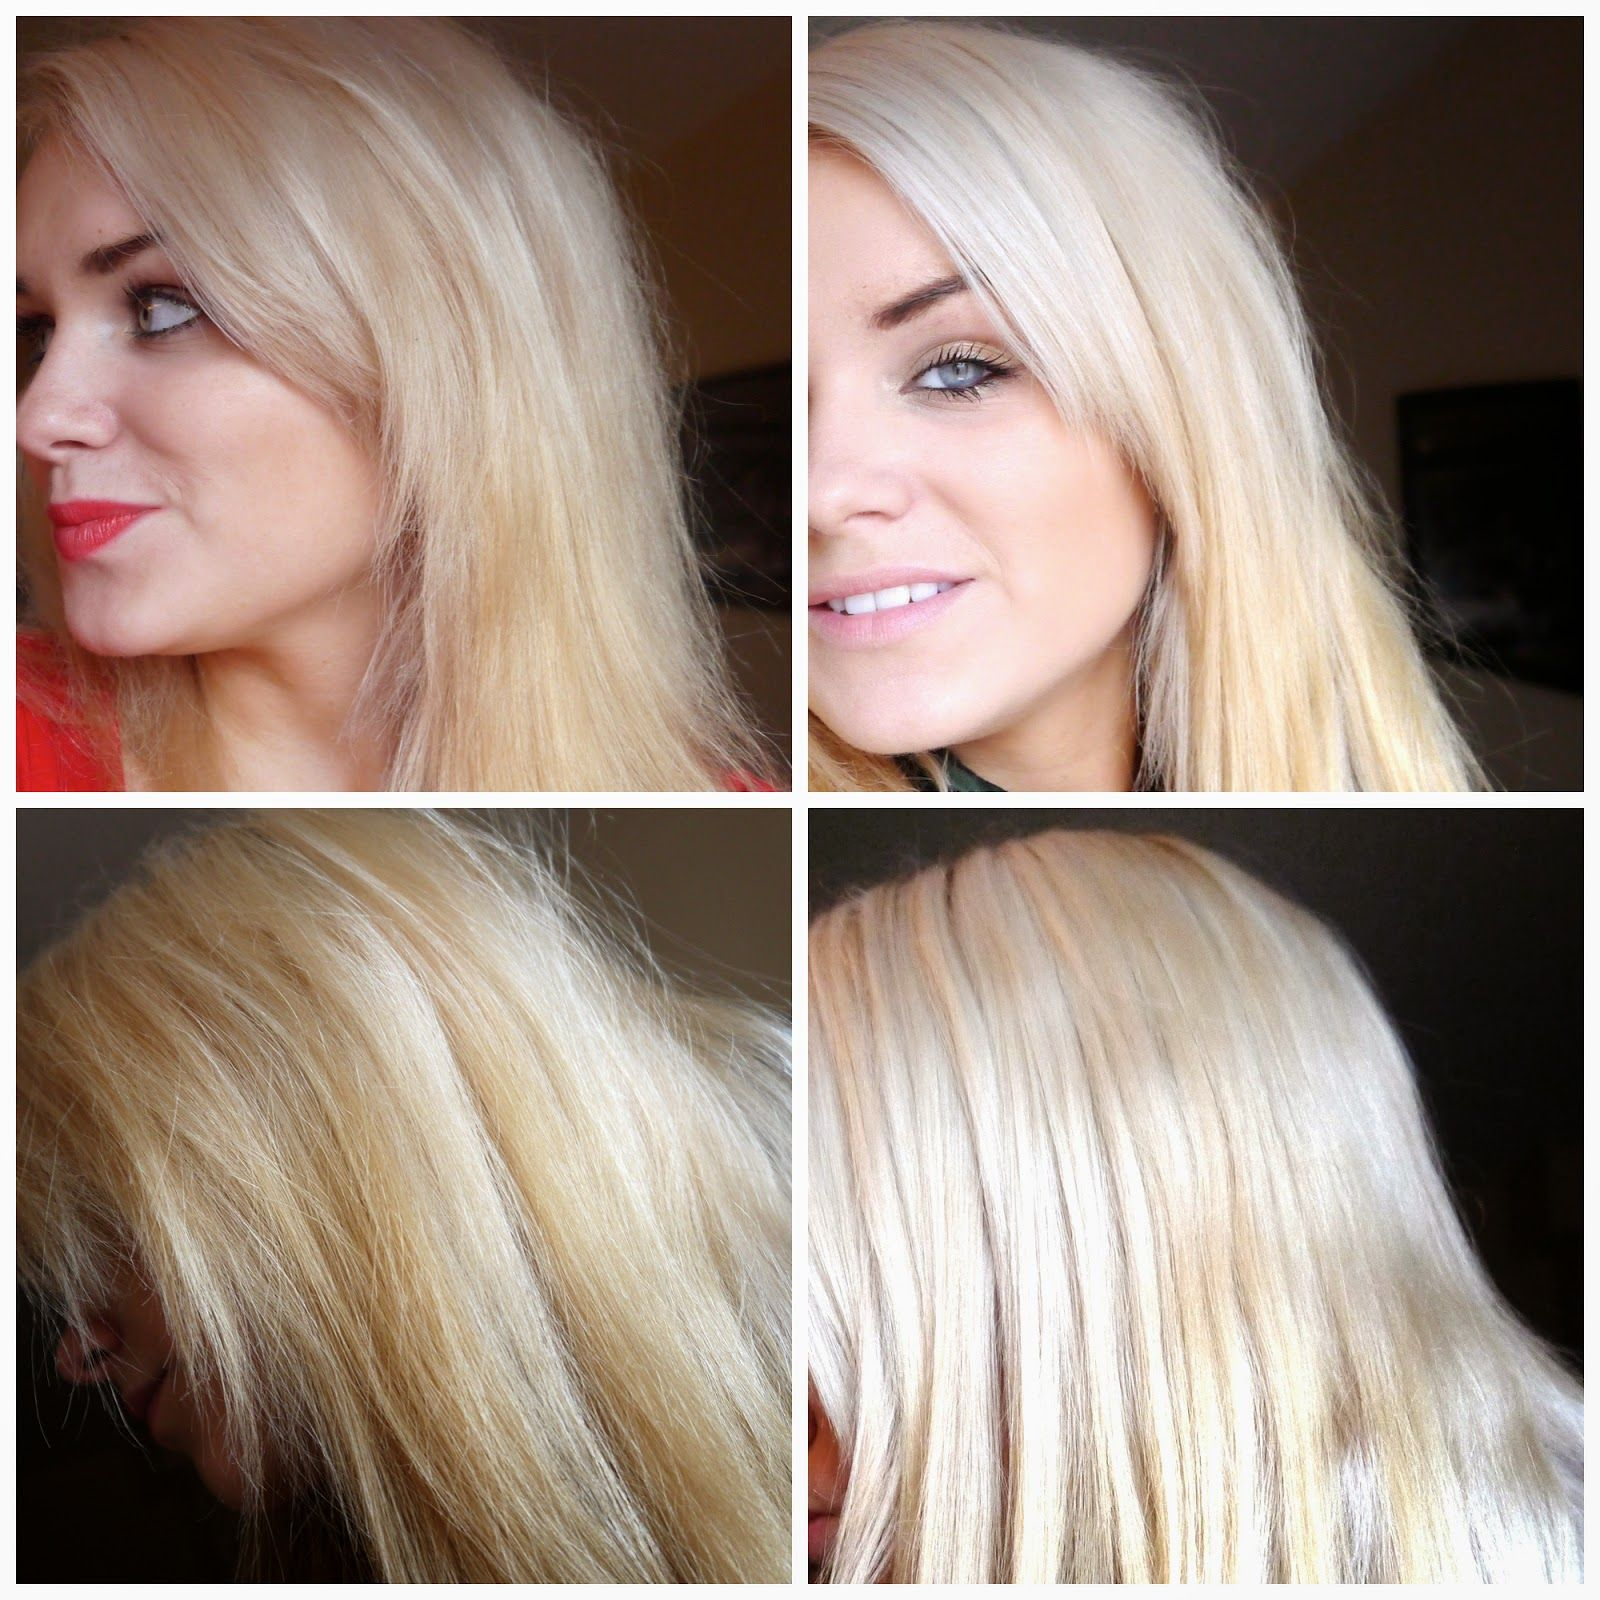 THE HAIR SCHWARZKOPF COLOUR MASK IN 910 PEARL BLONDE